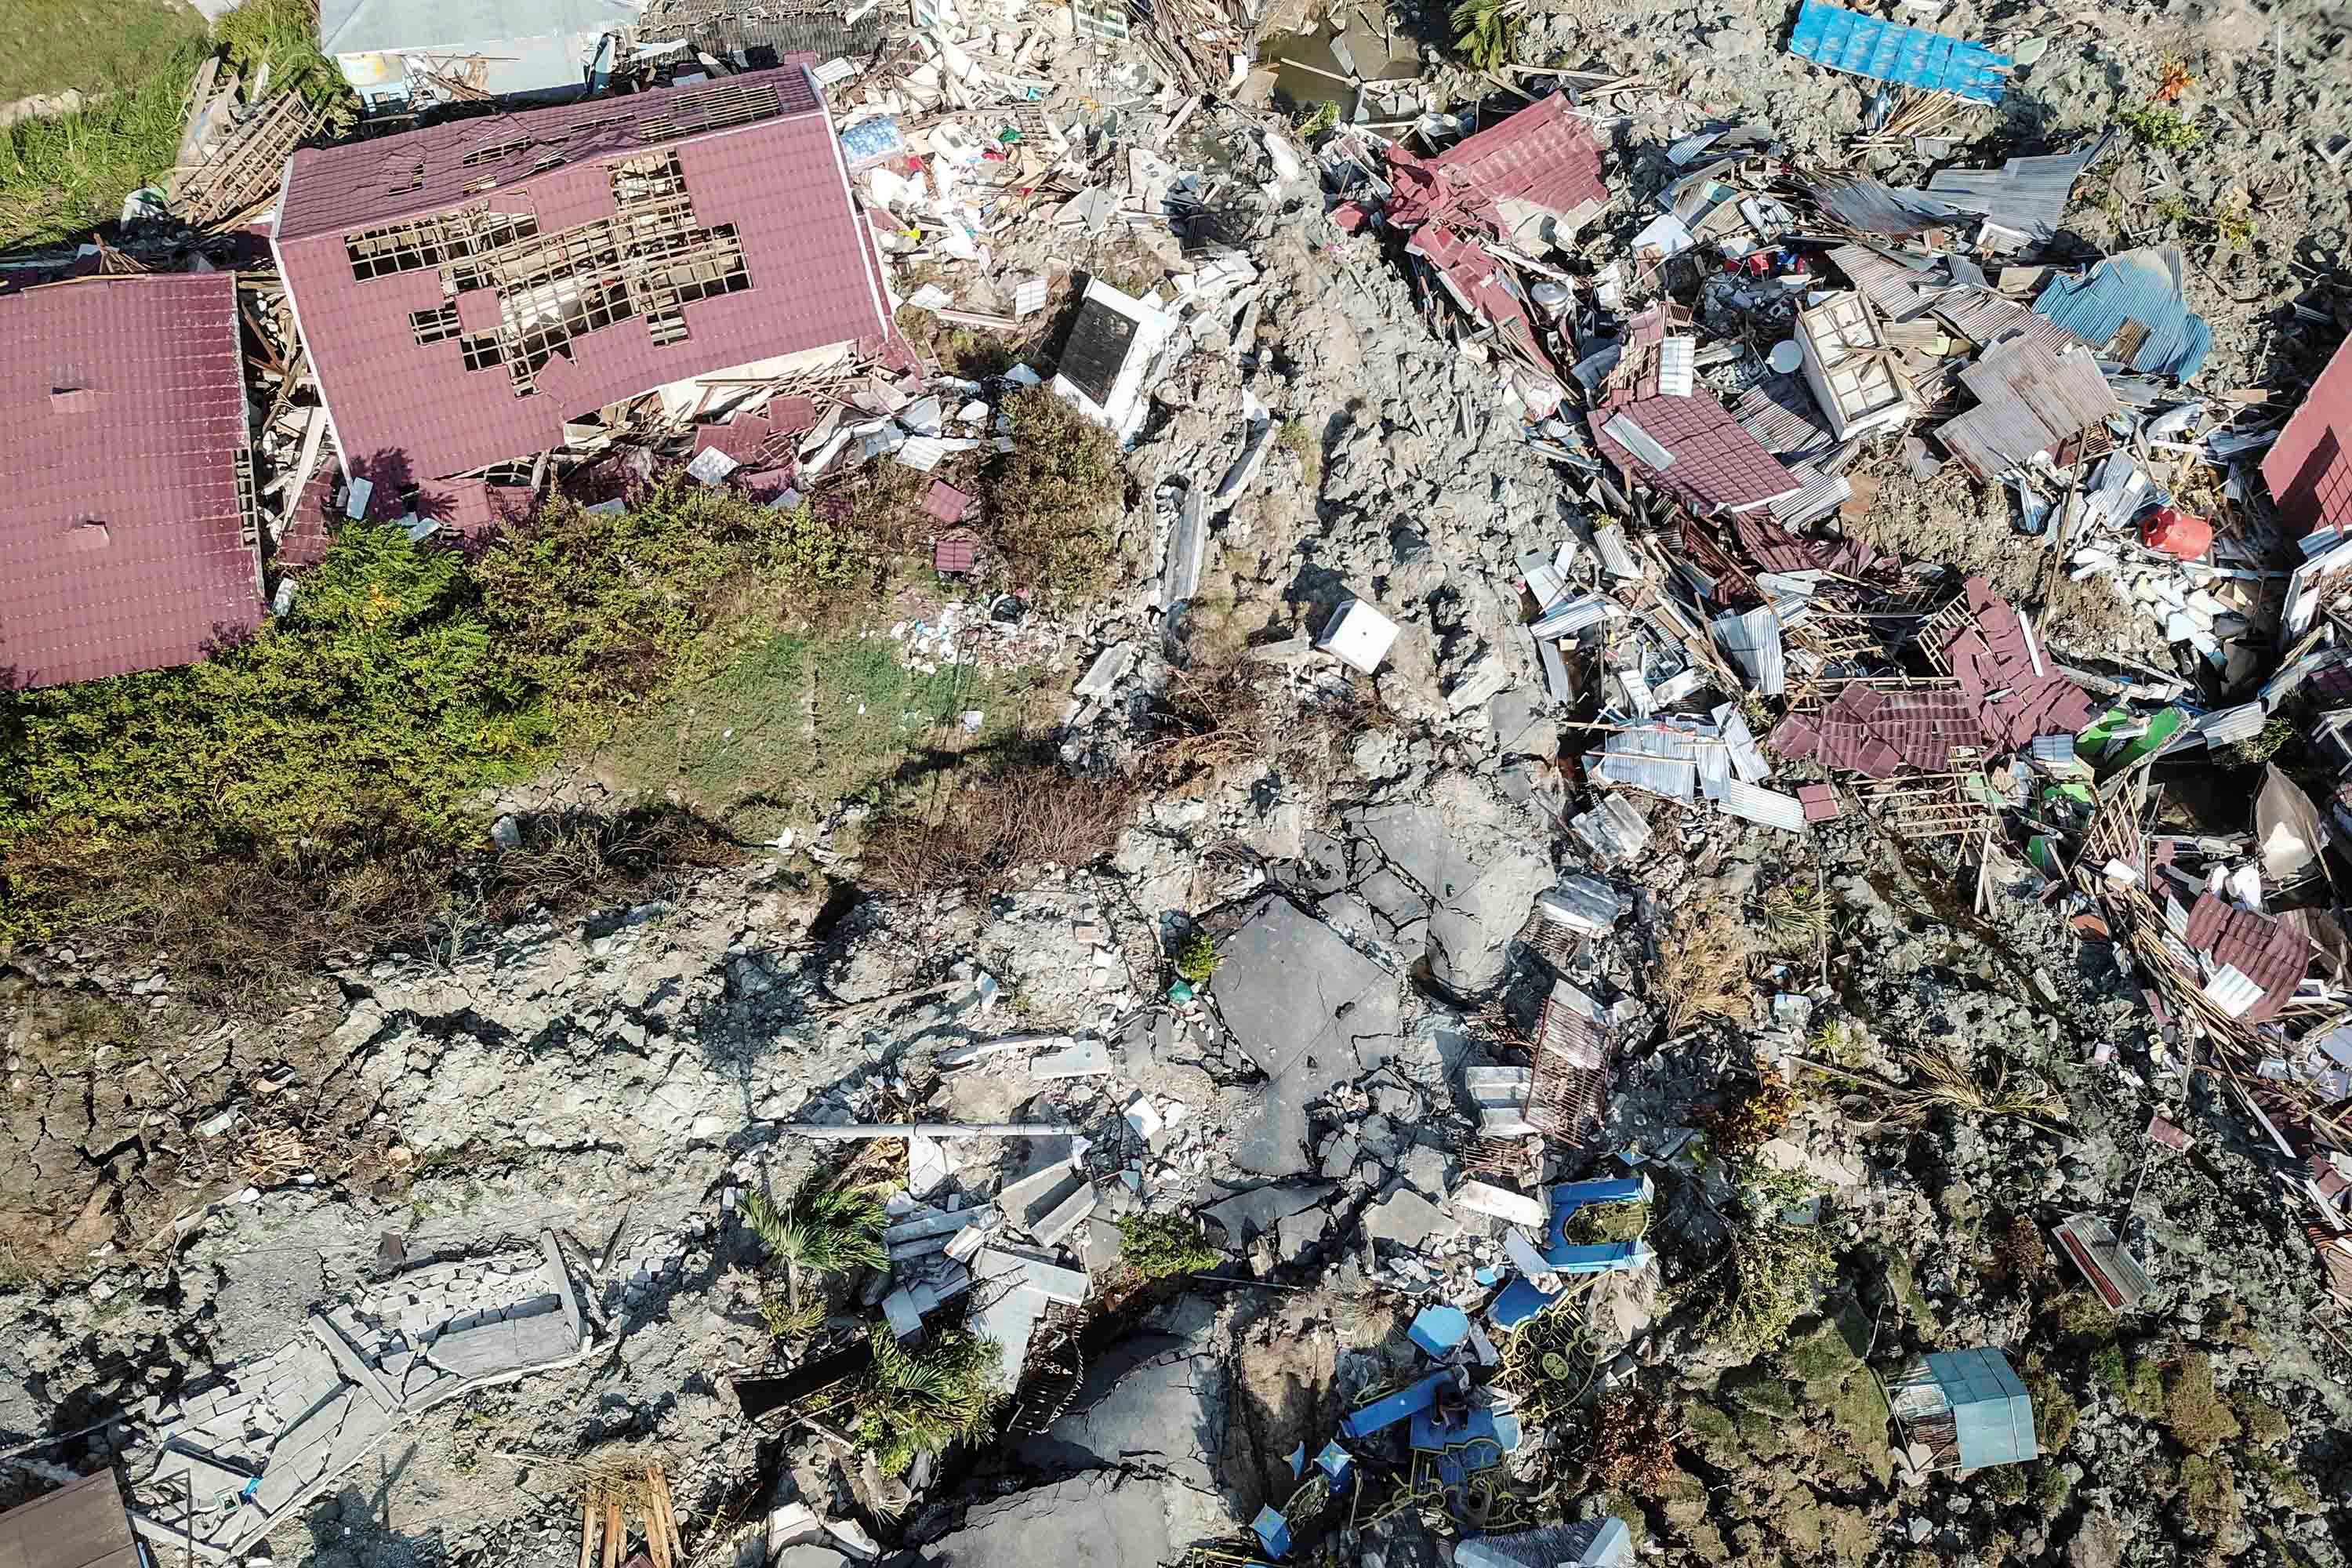 An aerial view of Petobo sub-district following an earthquake in Palu, Central Sulawesi, Indonesia, Oct. 2, 2018.